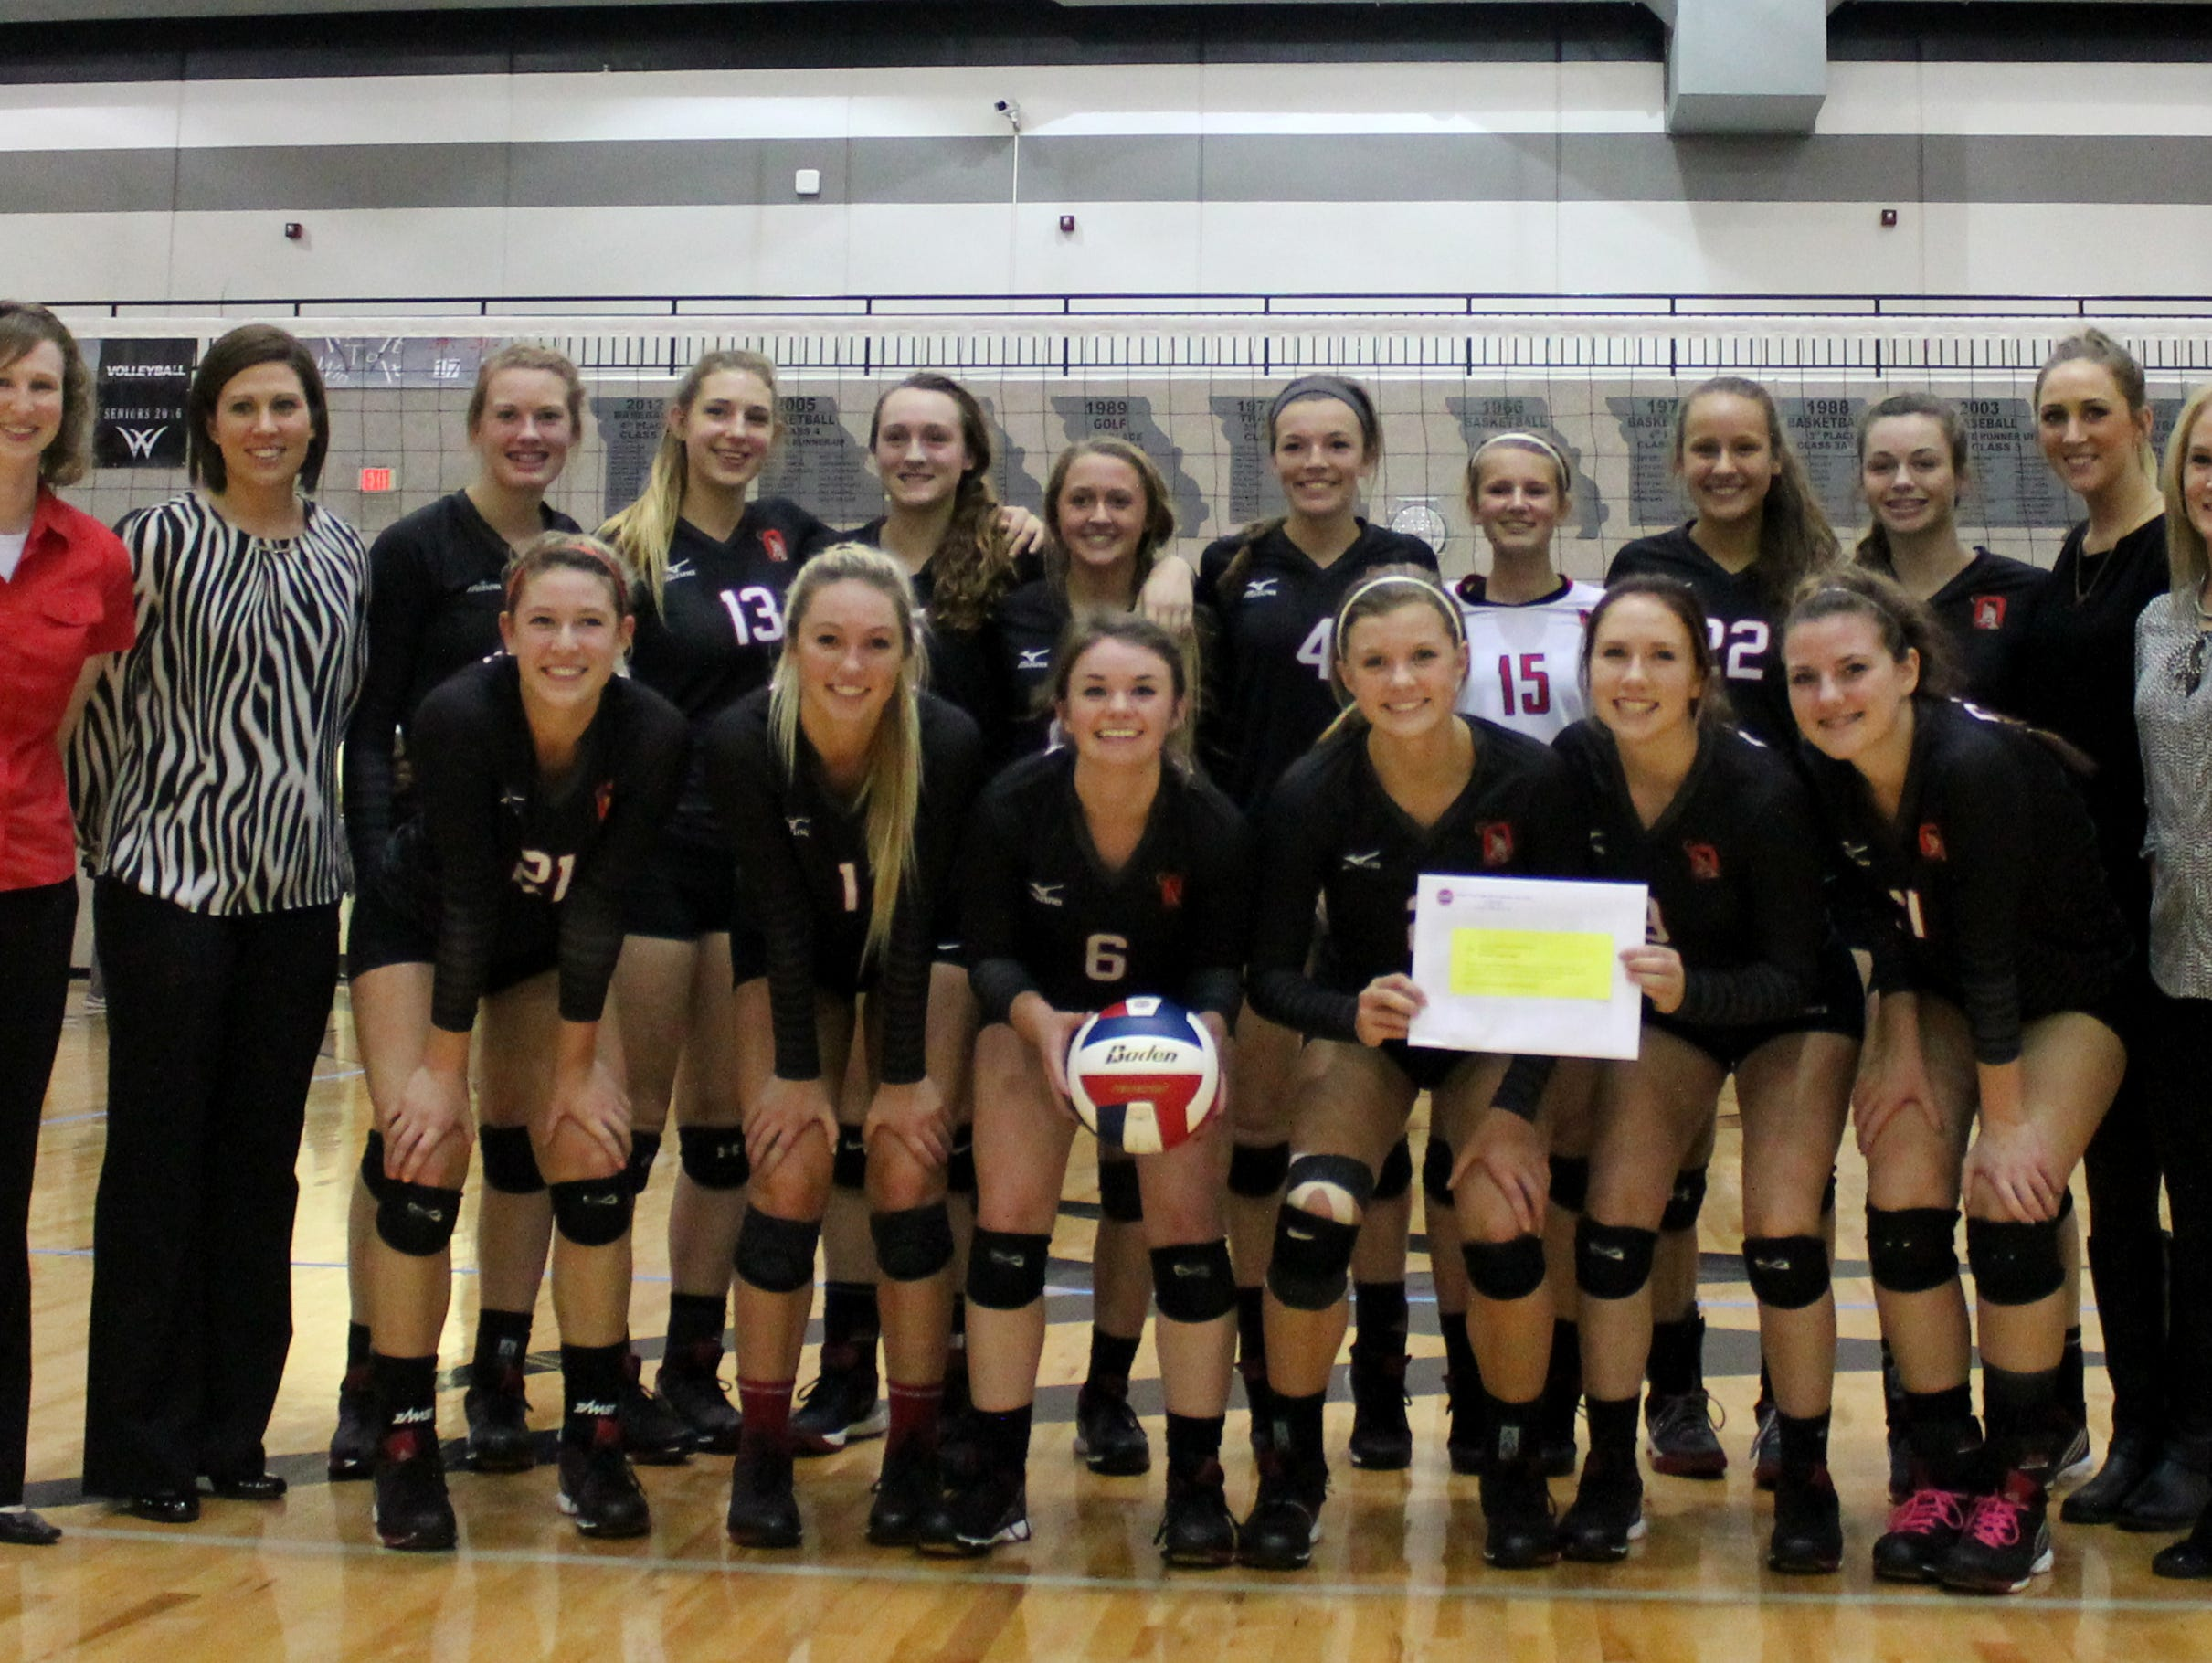 The Ozark High School volleyball team qualified for its sixth consecutive final four by beating Willard two sets to one Saturday, Oct. 24, 2015.